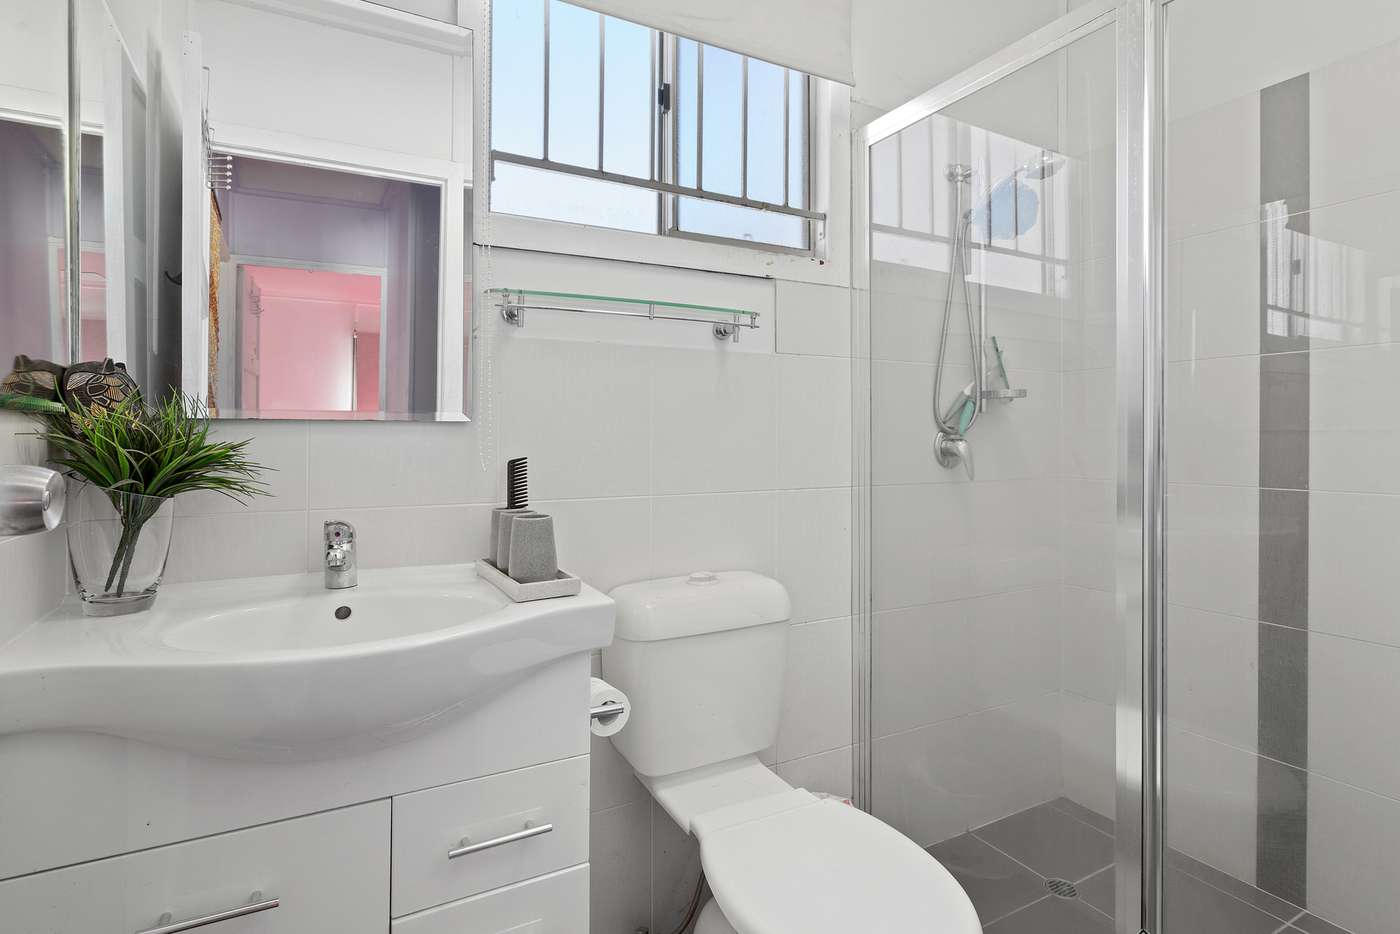 Fifth view of Homely house listing, 16 St Patrick Avenue, Kuraby QLD 4112